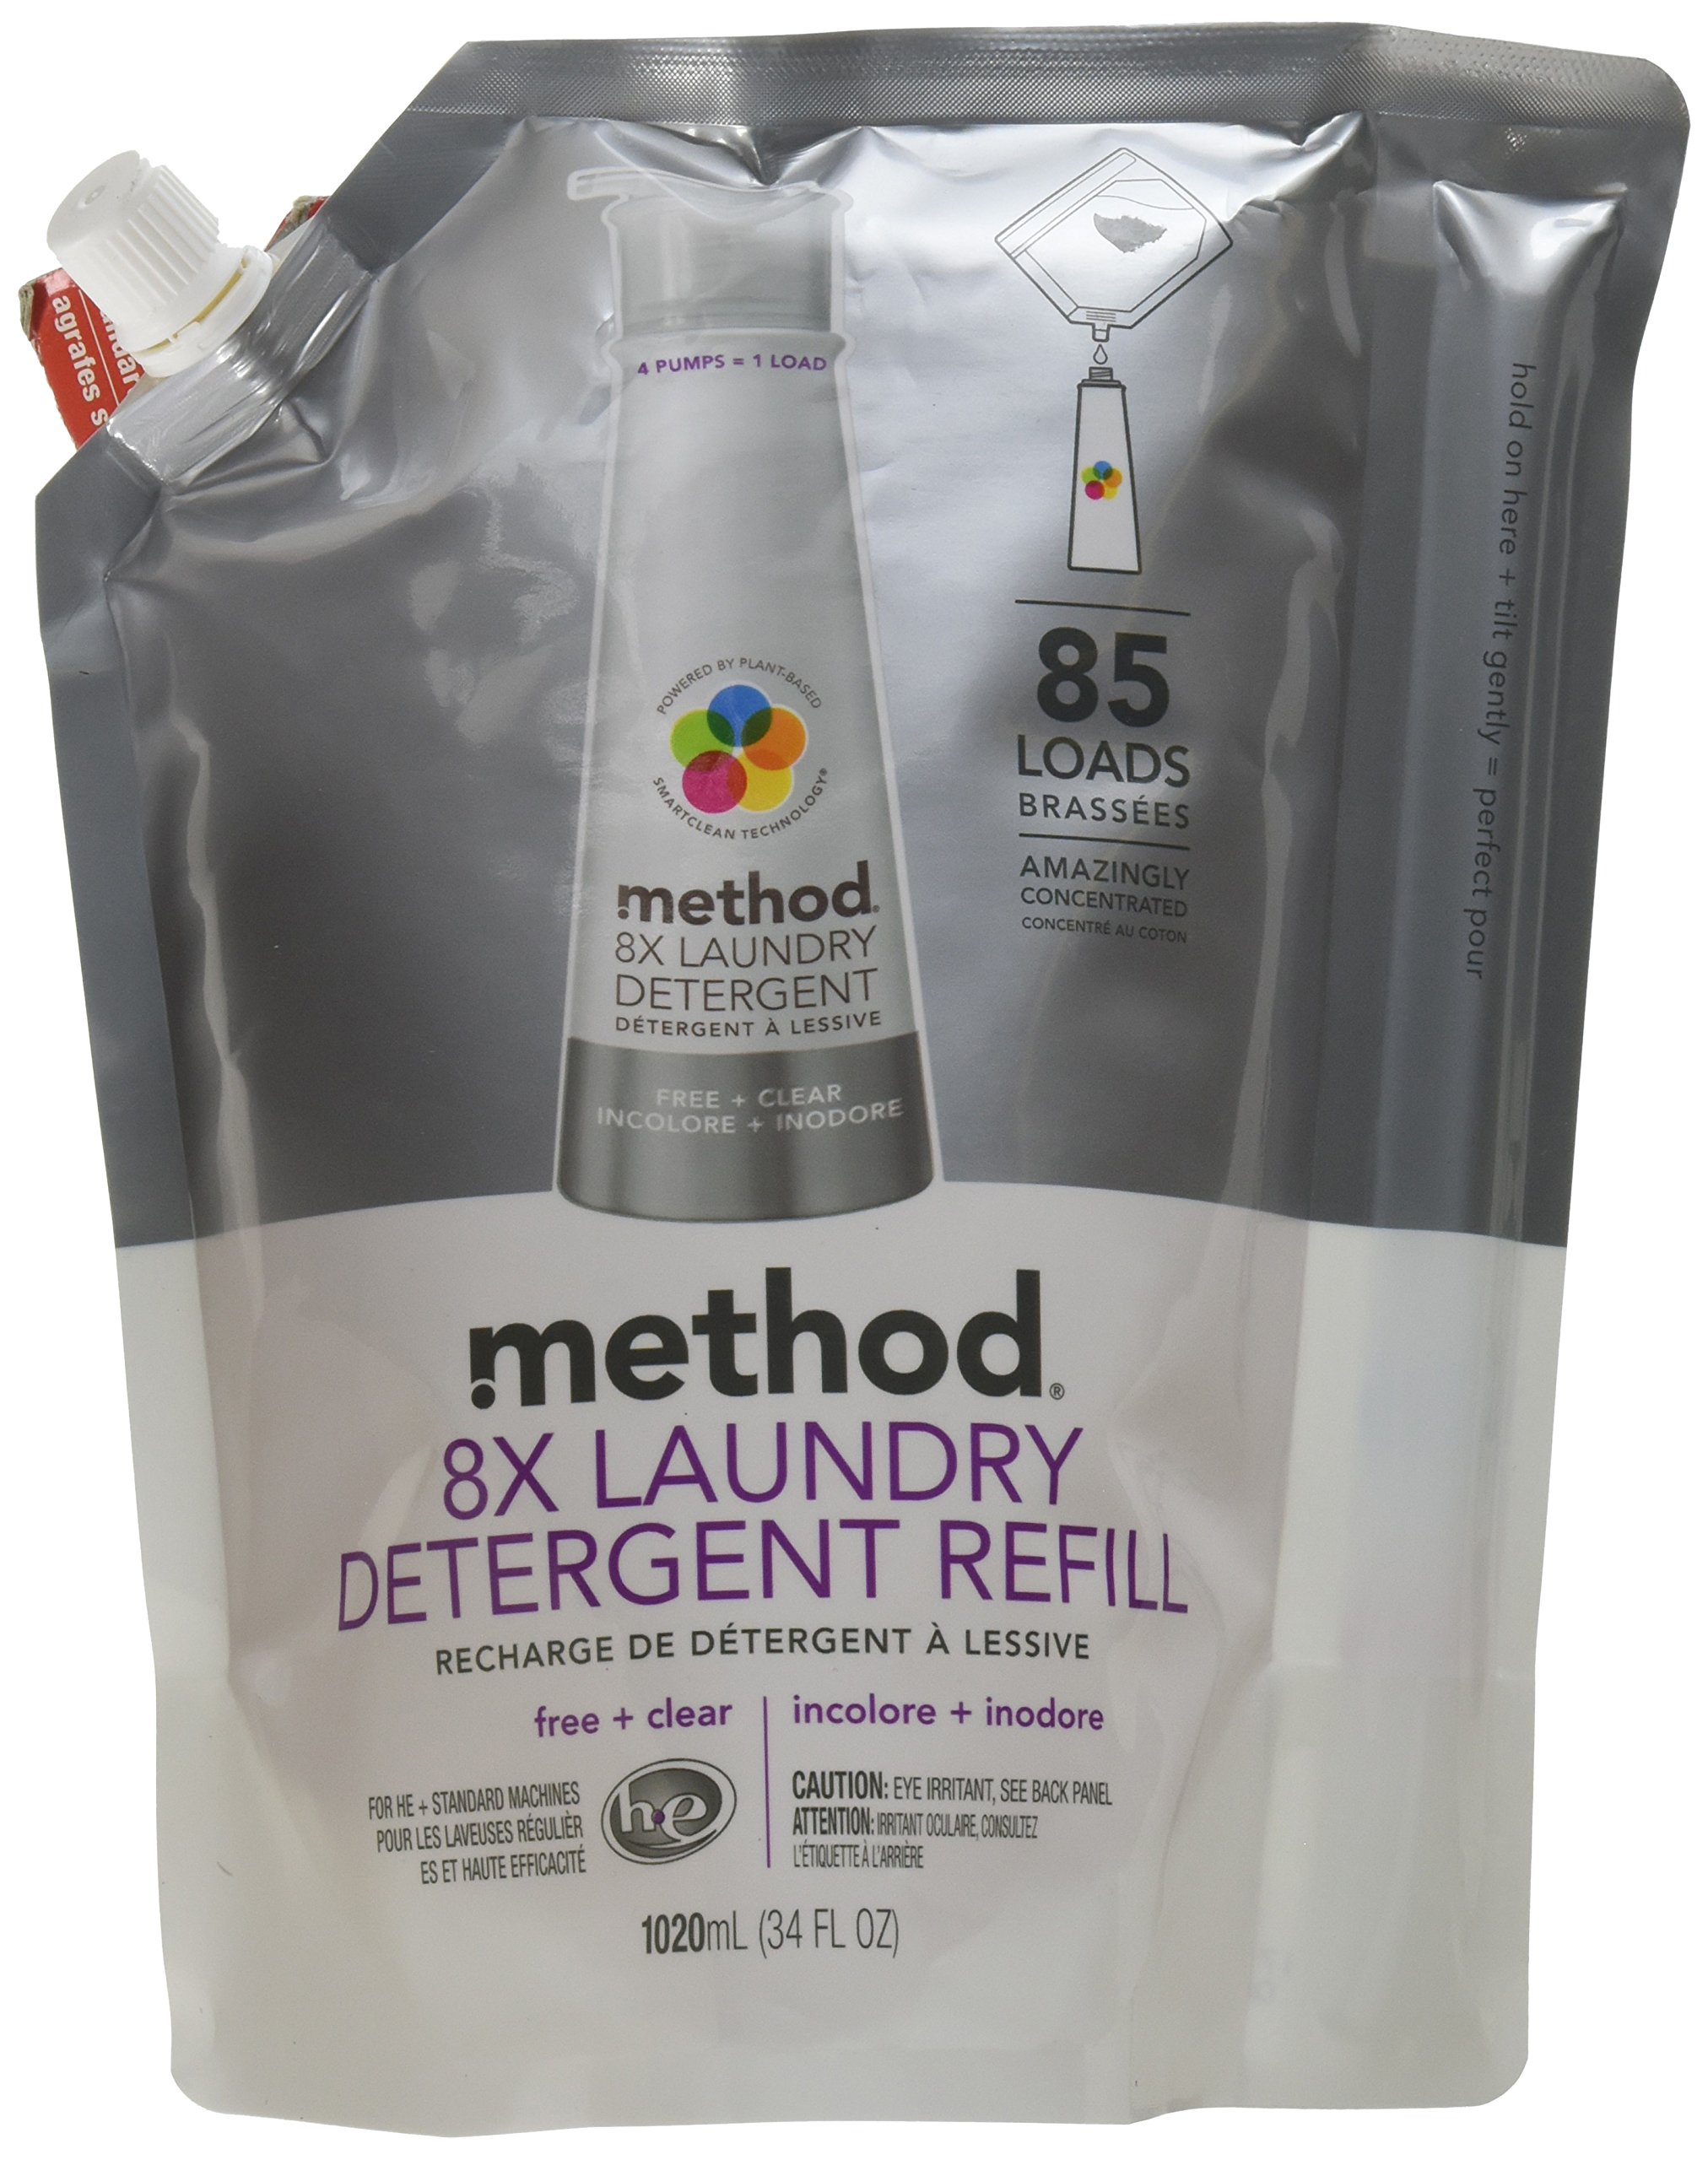 Method  8X Laundry Detergent Refill, Free + Clear, 34 Ounce, 85 Loads